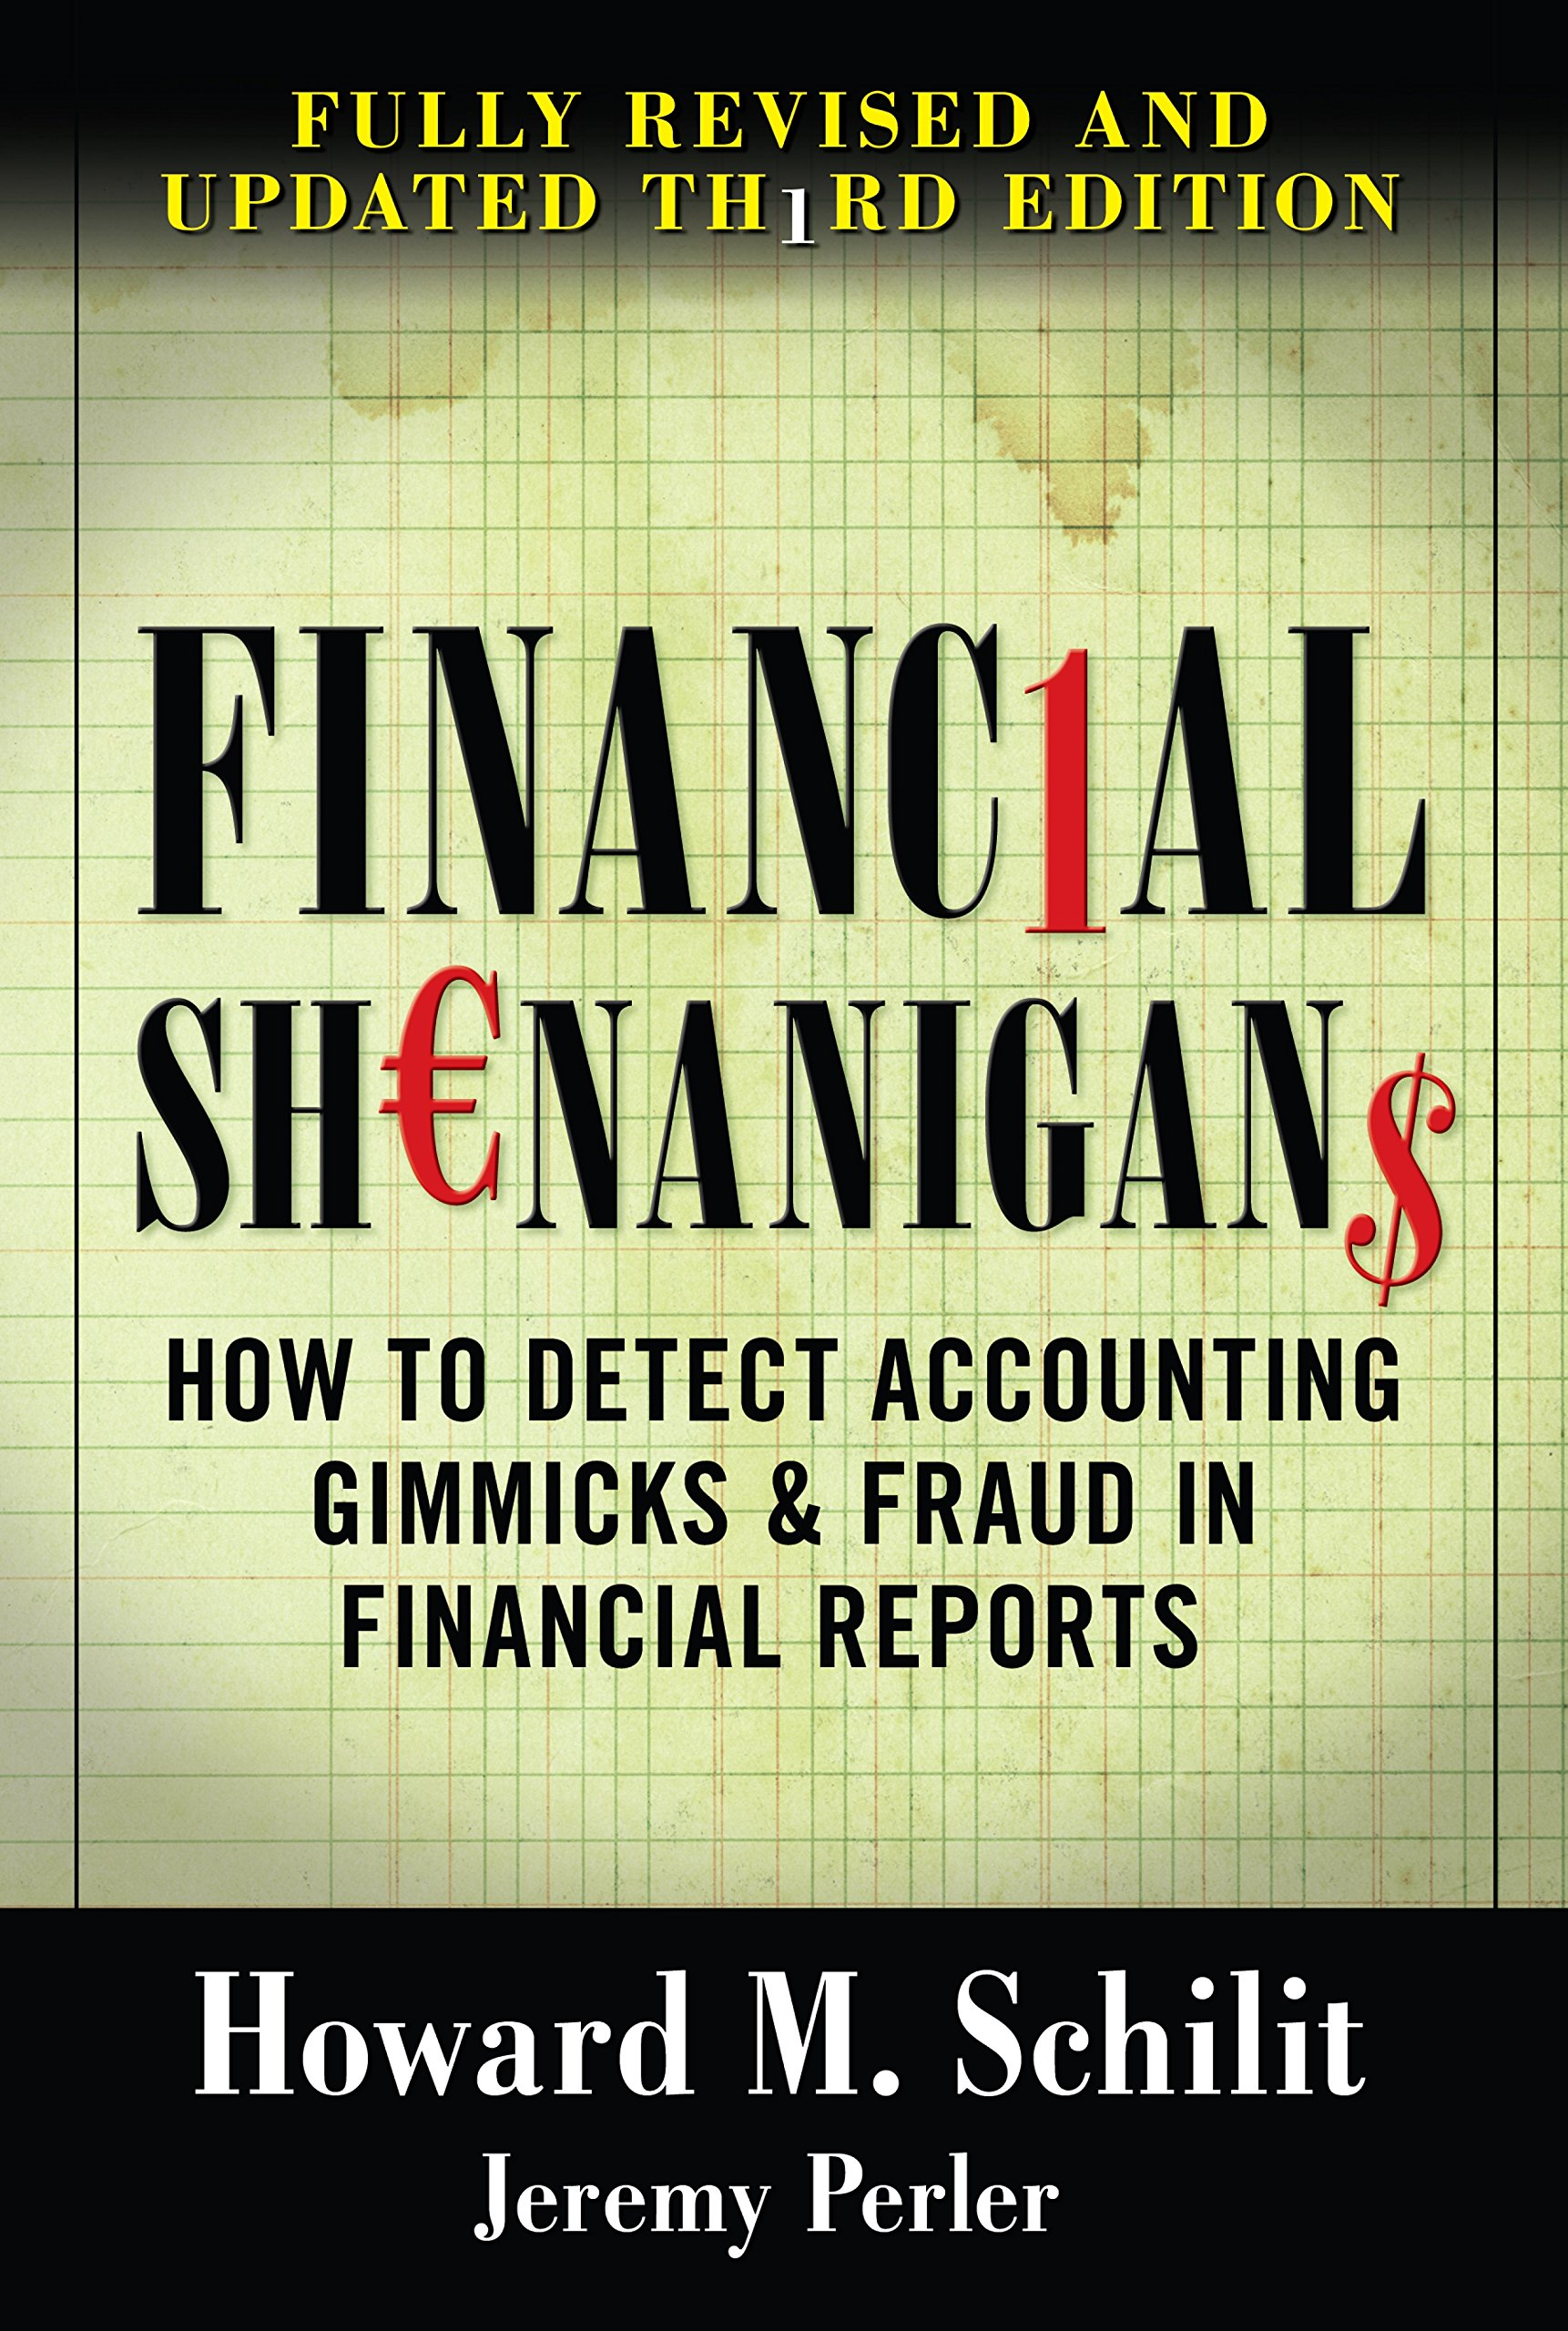 Financial Shenanigans Third Edition  English Edition